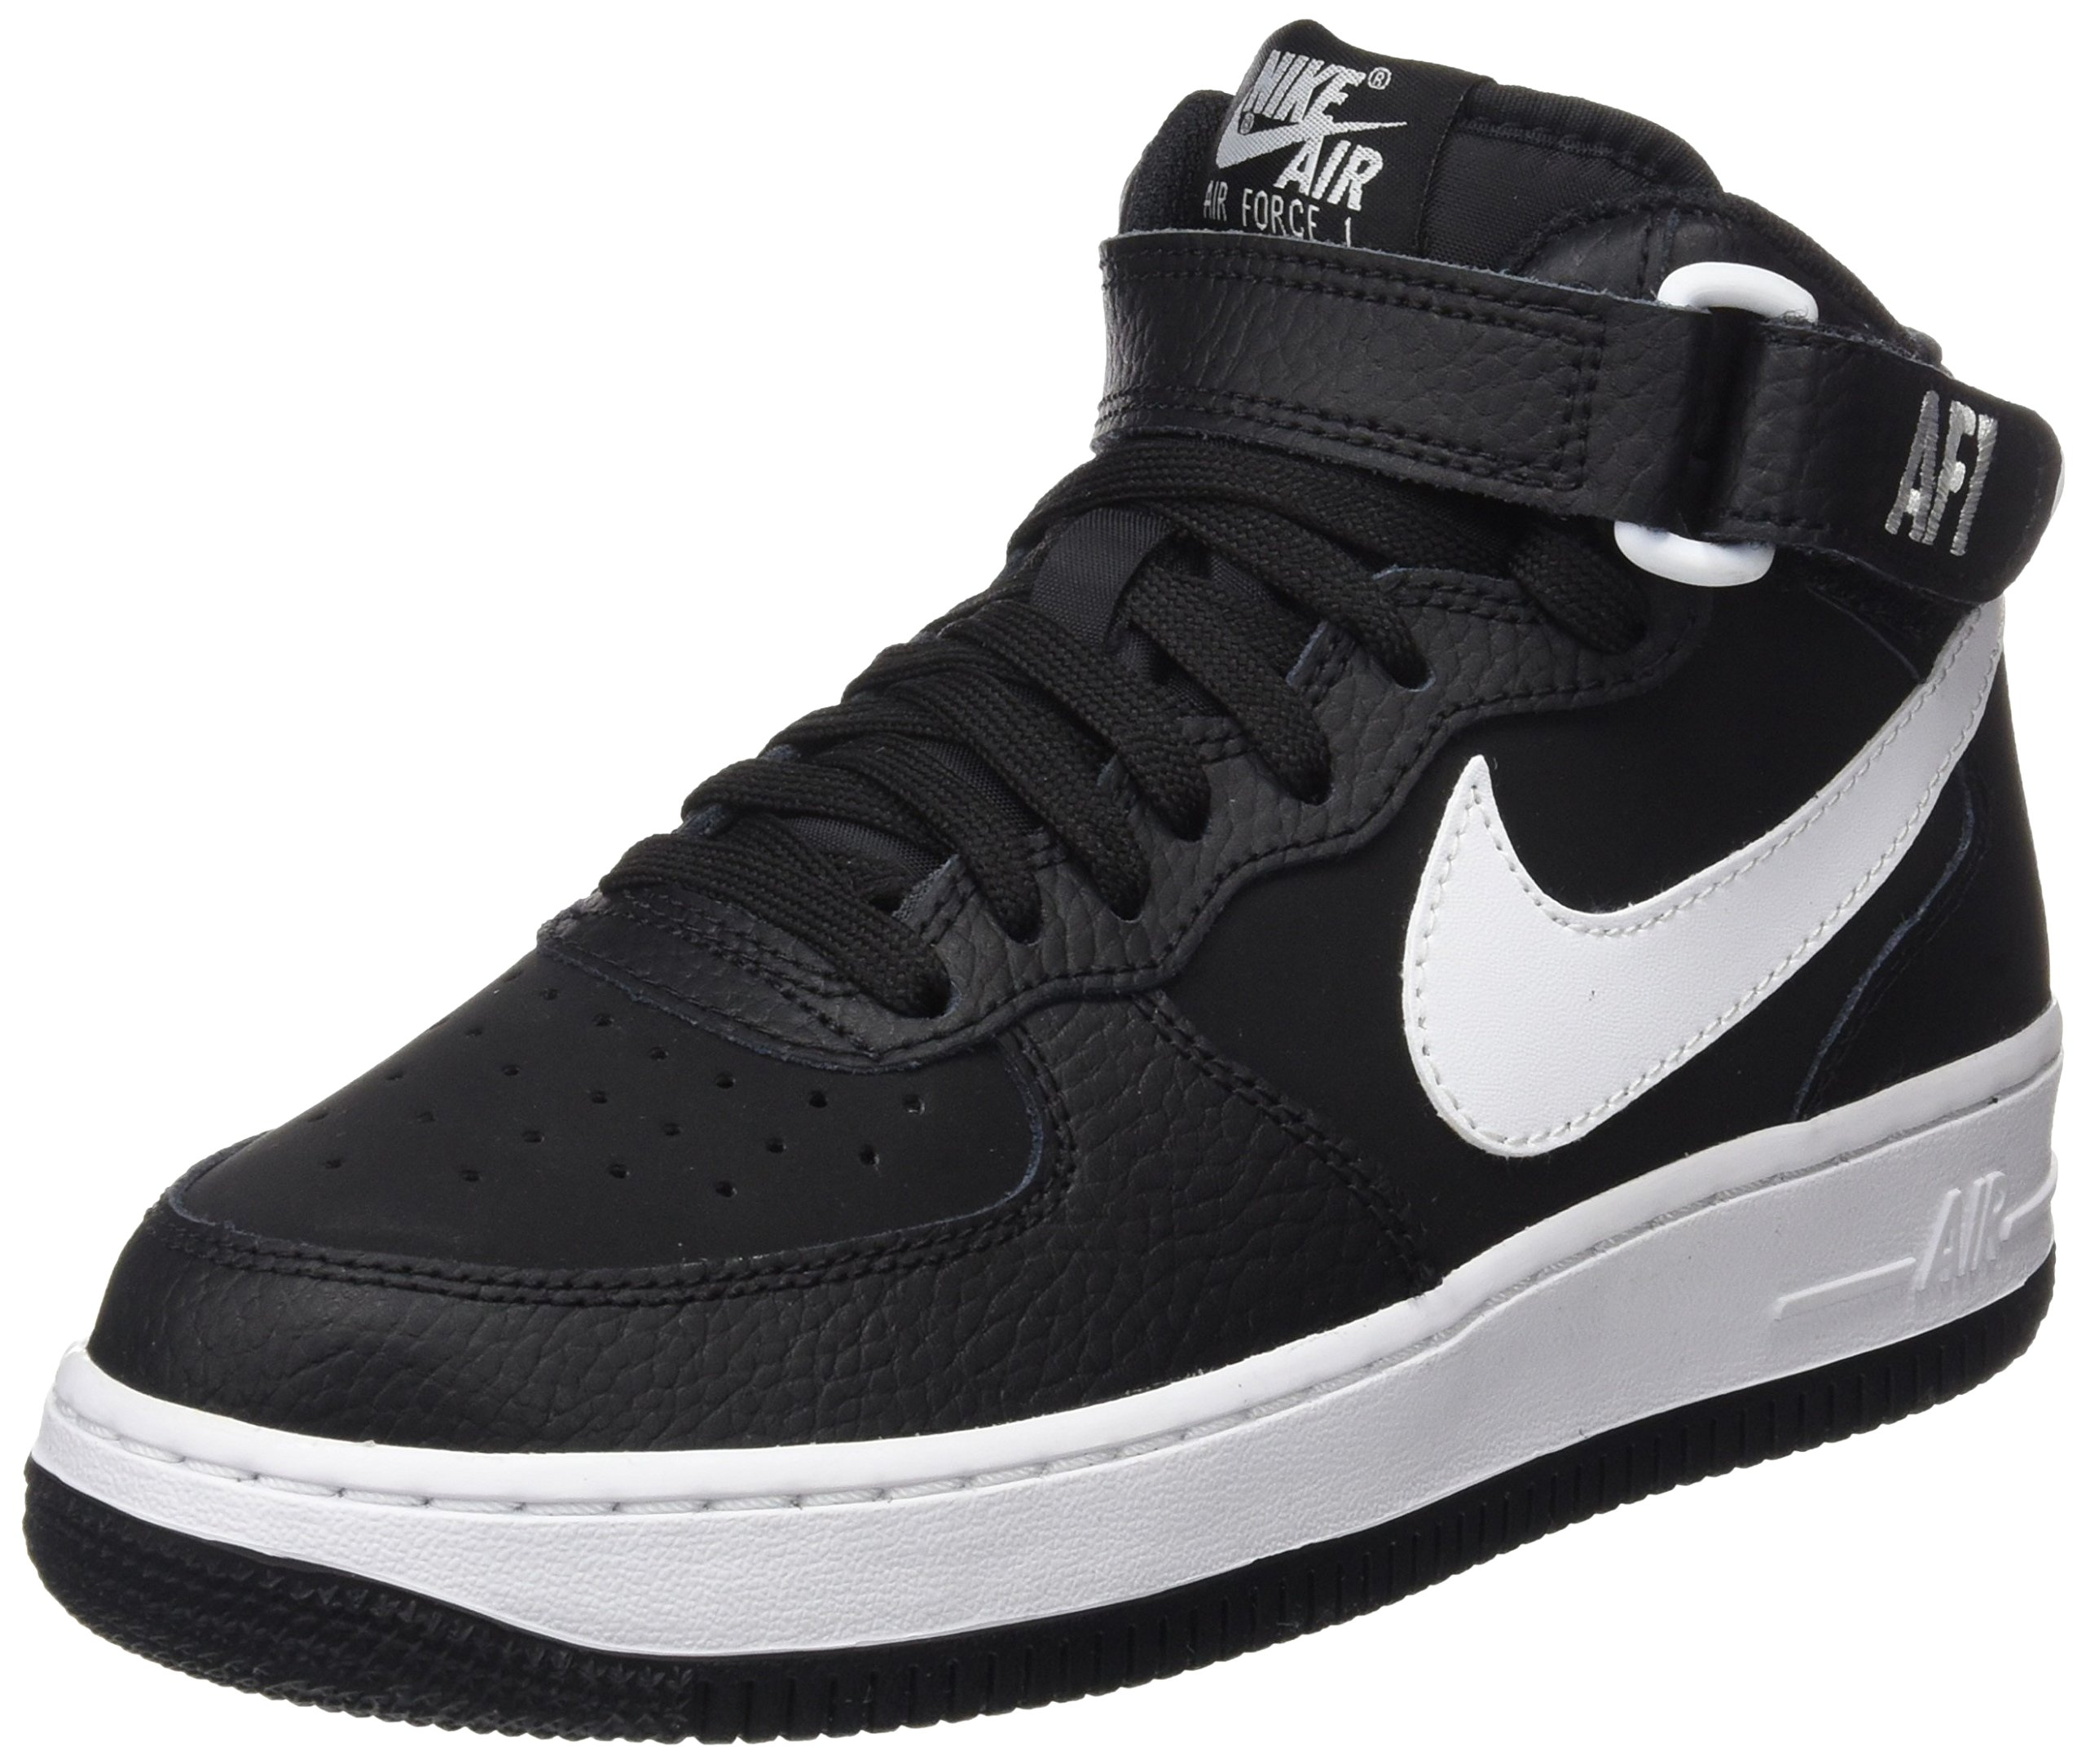 fed6b7324f20f Galleon - Nike Kids AIR Force 1 MID (GS) Black White Size 7